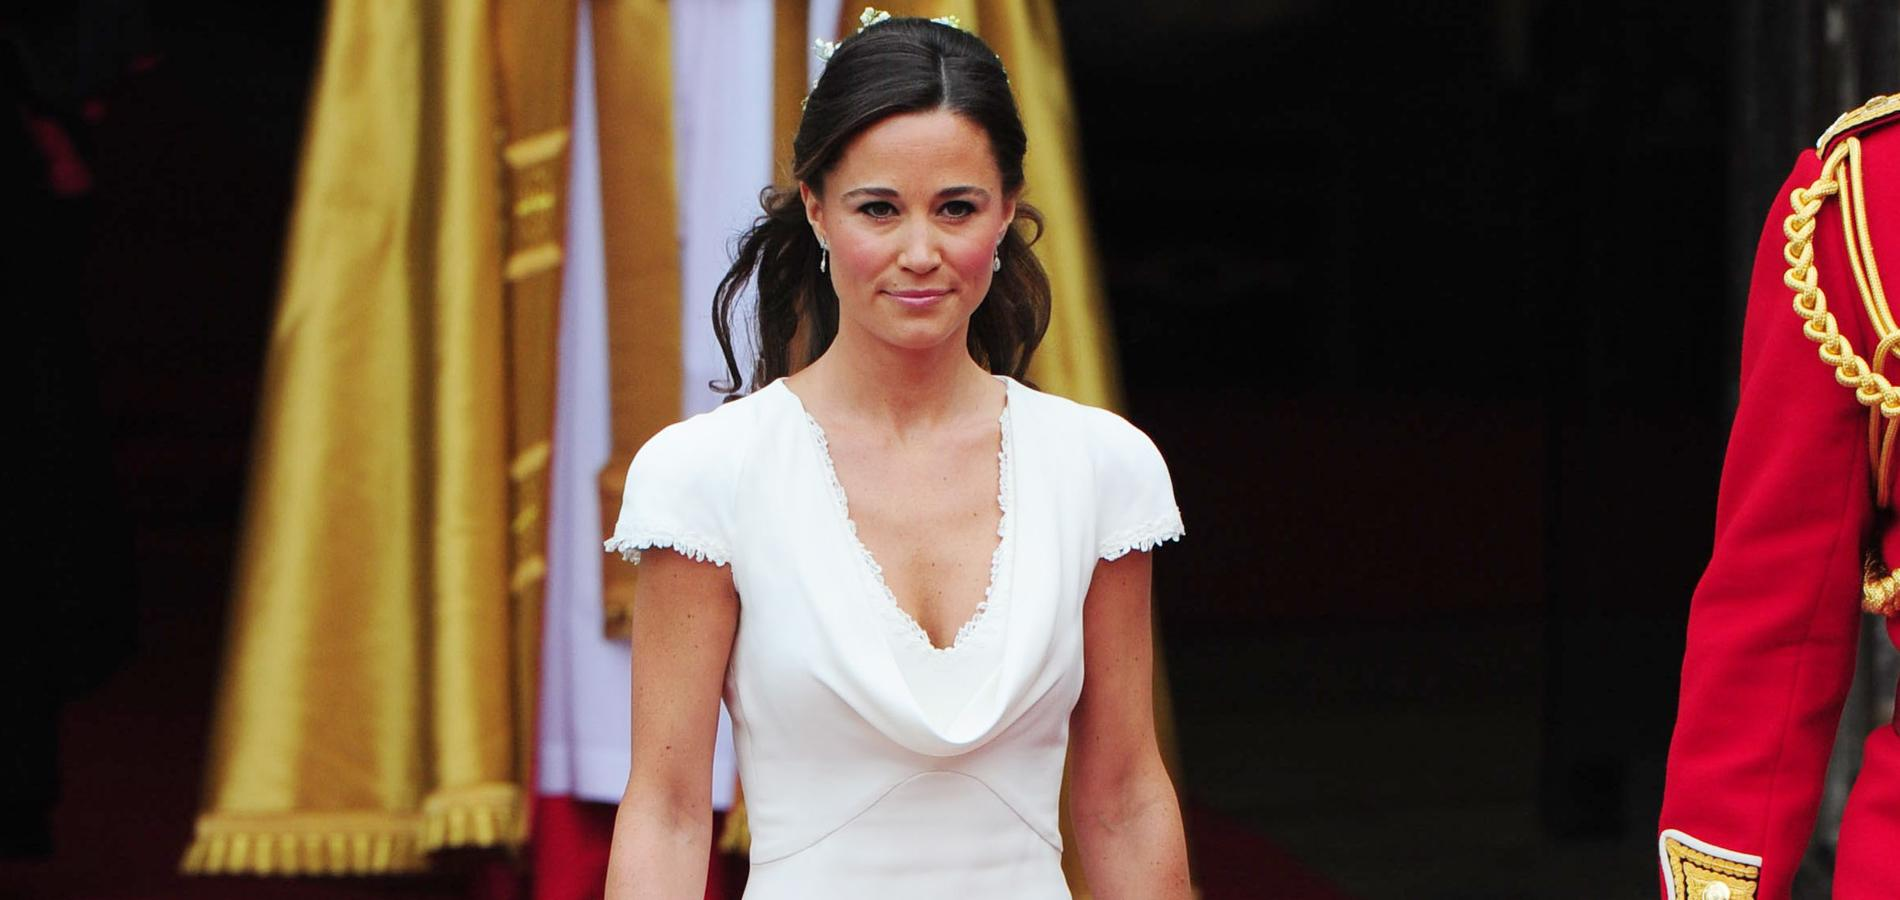 pippa-middleton-au-mariage-de-kate-middleton.jpg (1900×900)